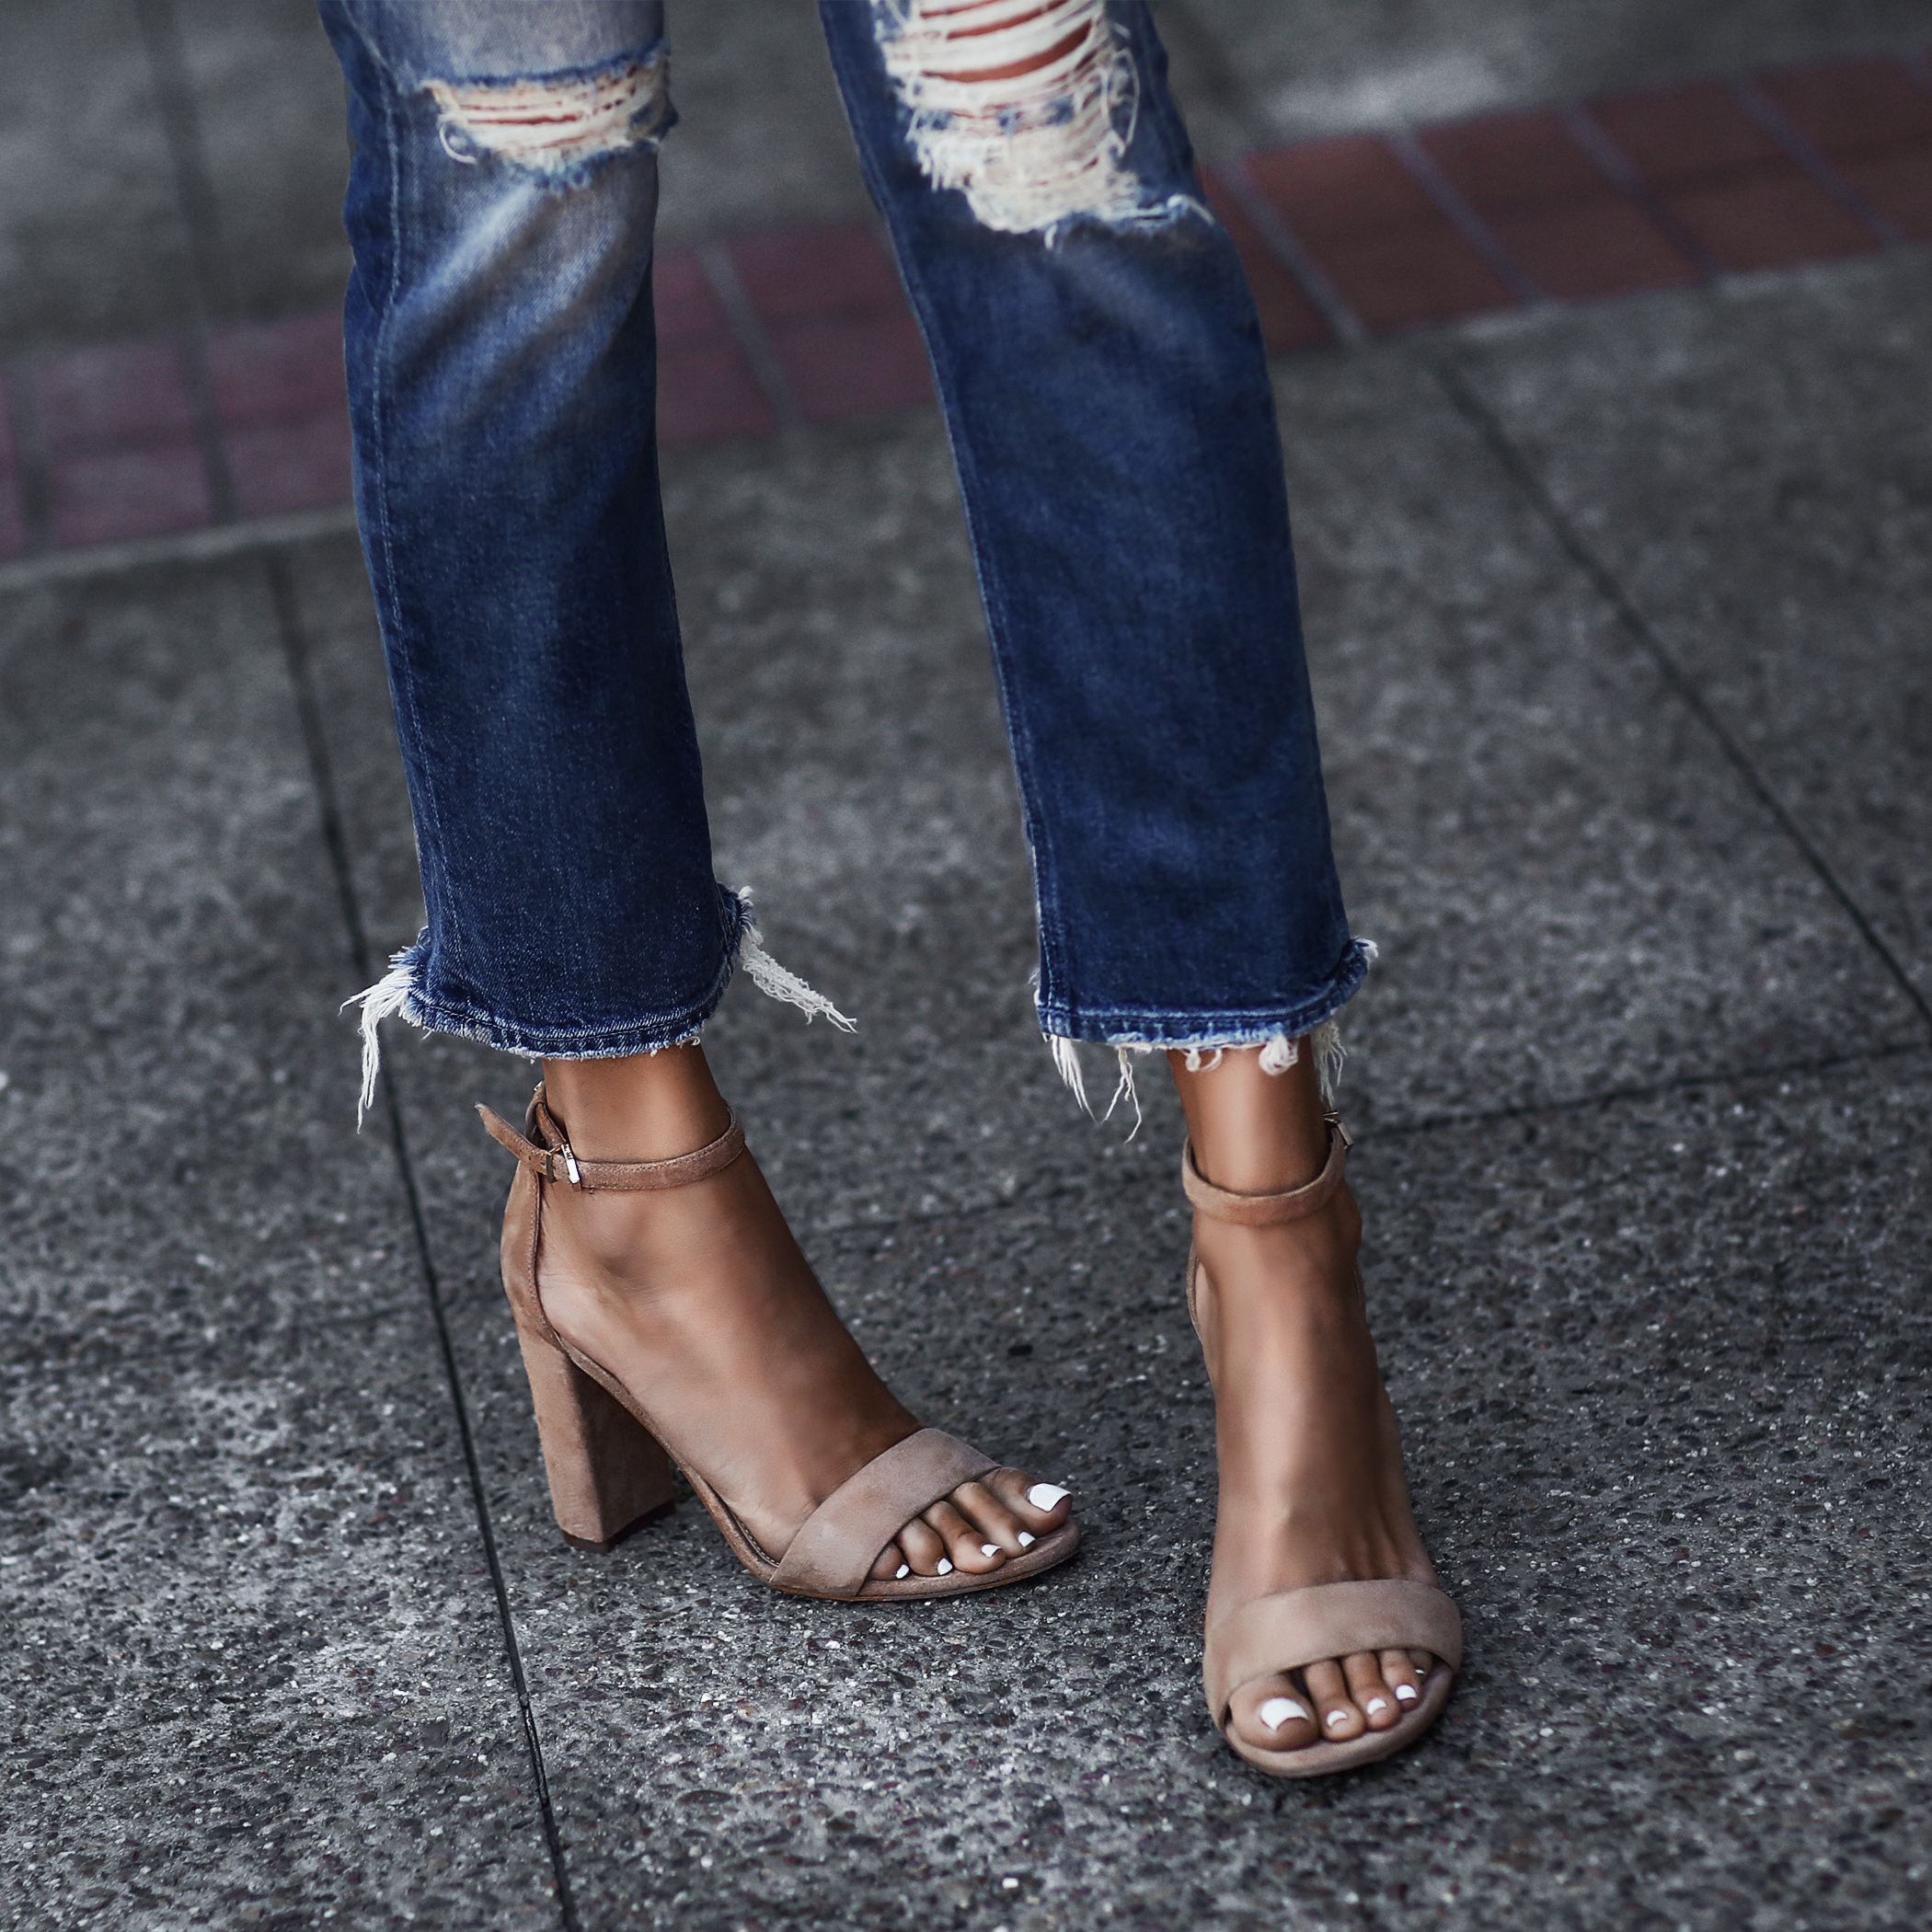 distressed denim, tan suede sandals